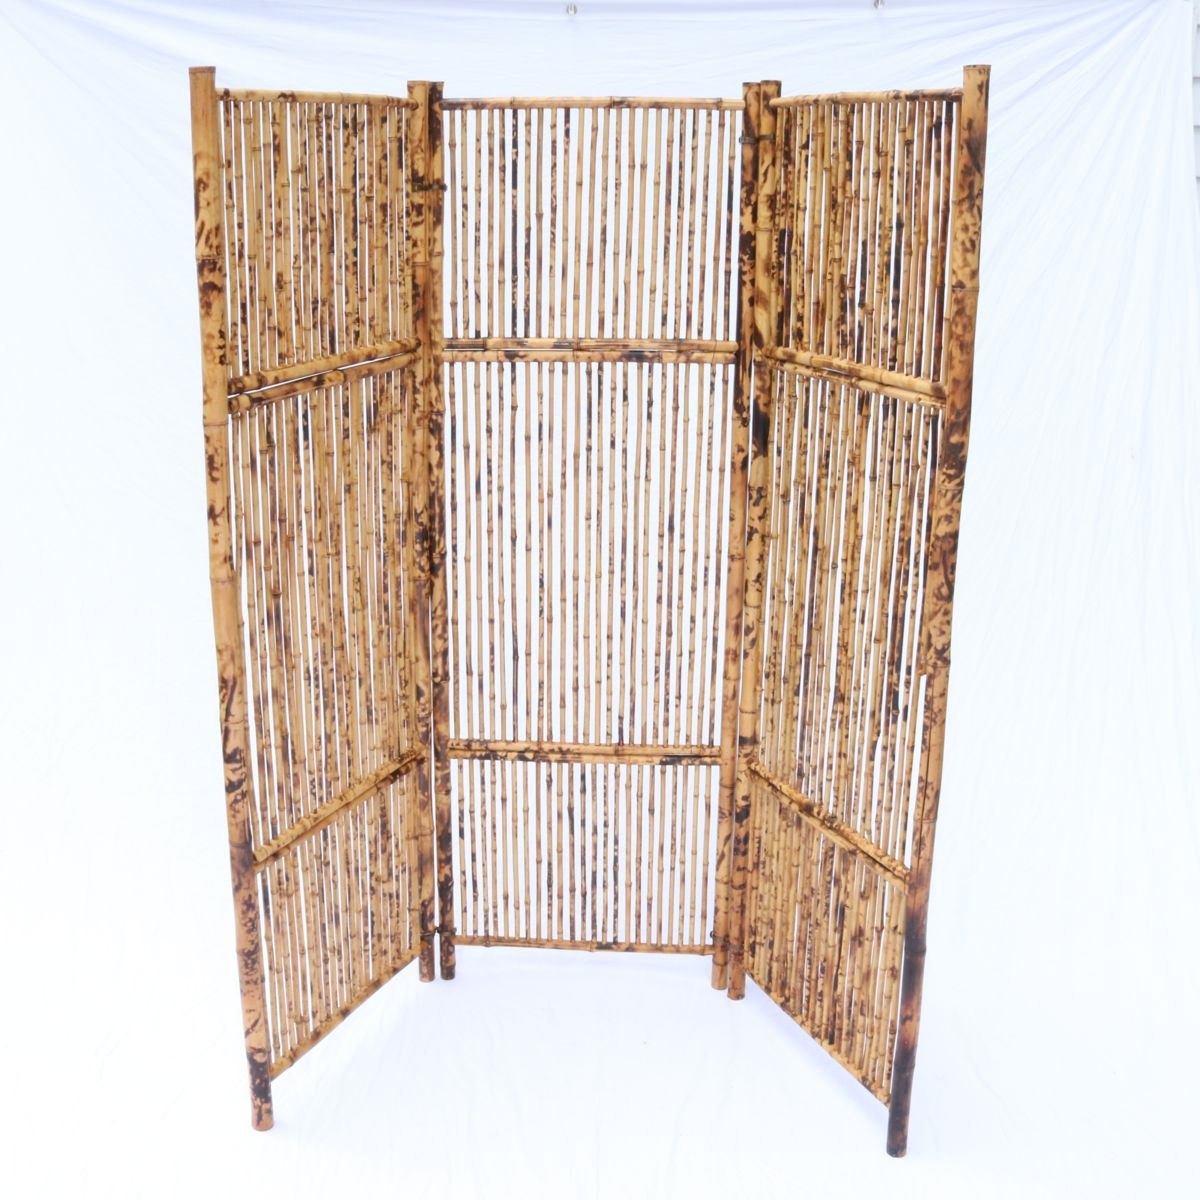 Antique Vintage Bamboo Screen Room Divider Rattan Great Patina Lee